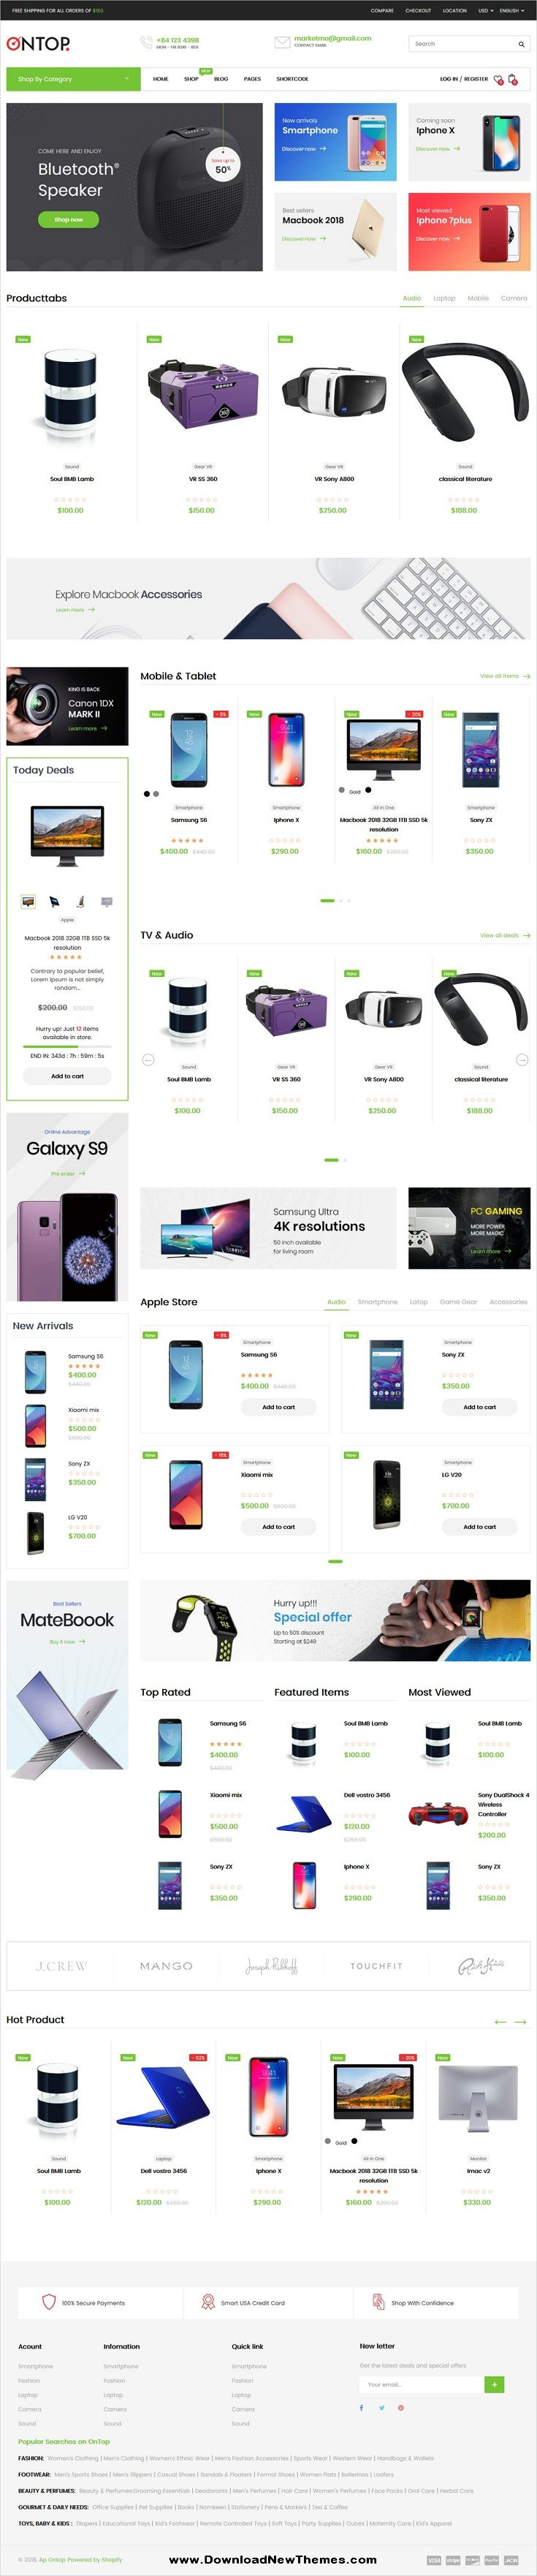 Ontop is a clean, minimalist and modern design responsive